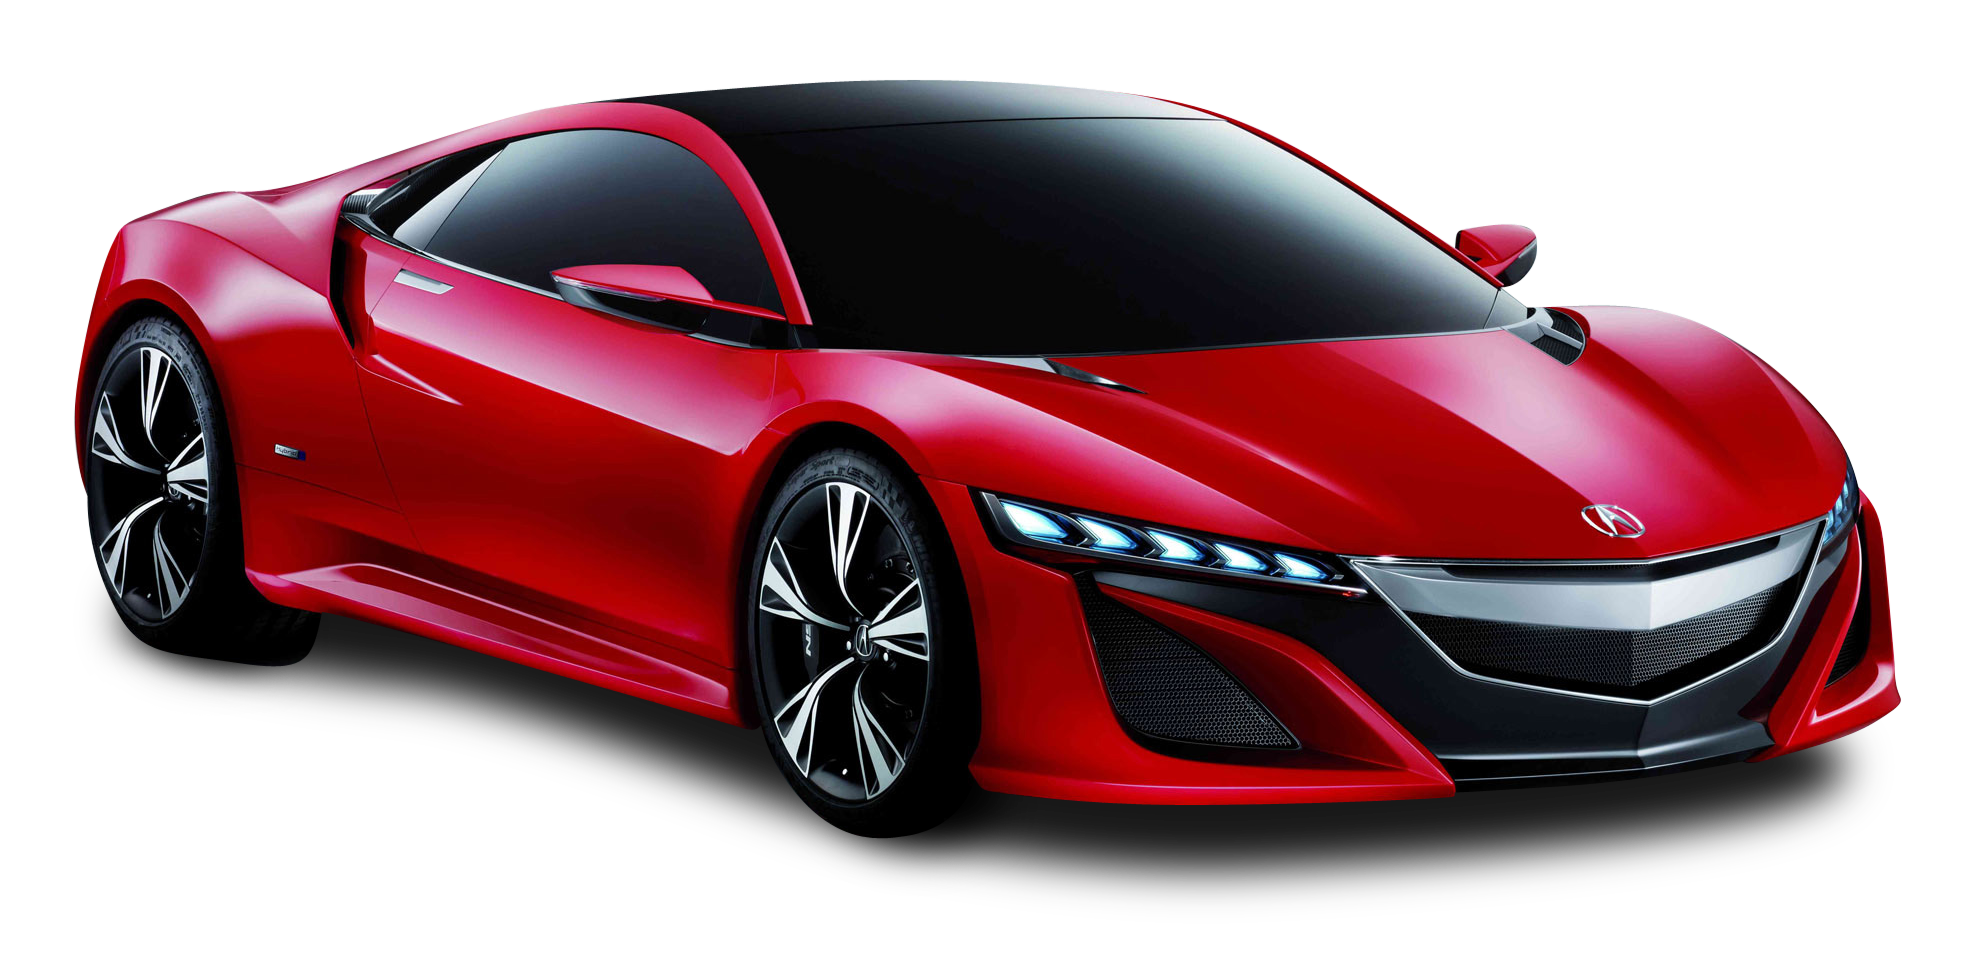 Red Acura Nsx Front View Car Png Image Purepng Free Transparent